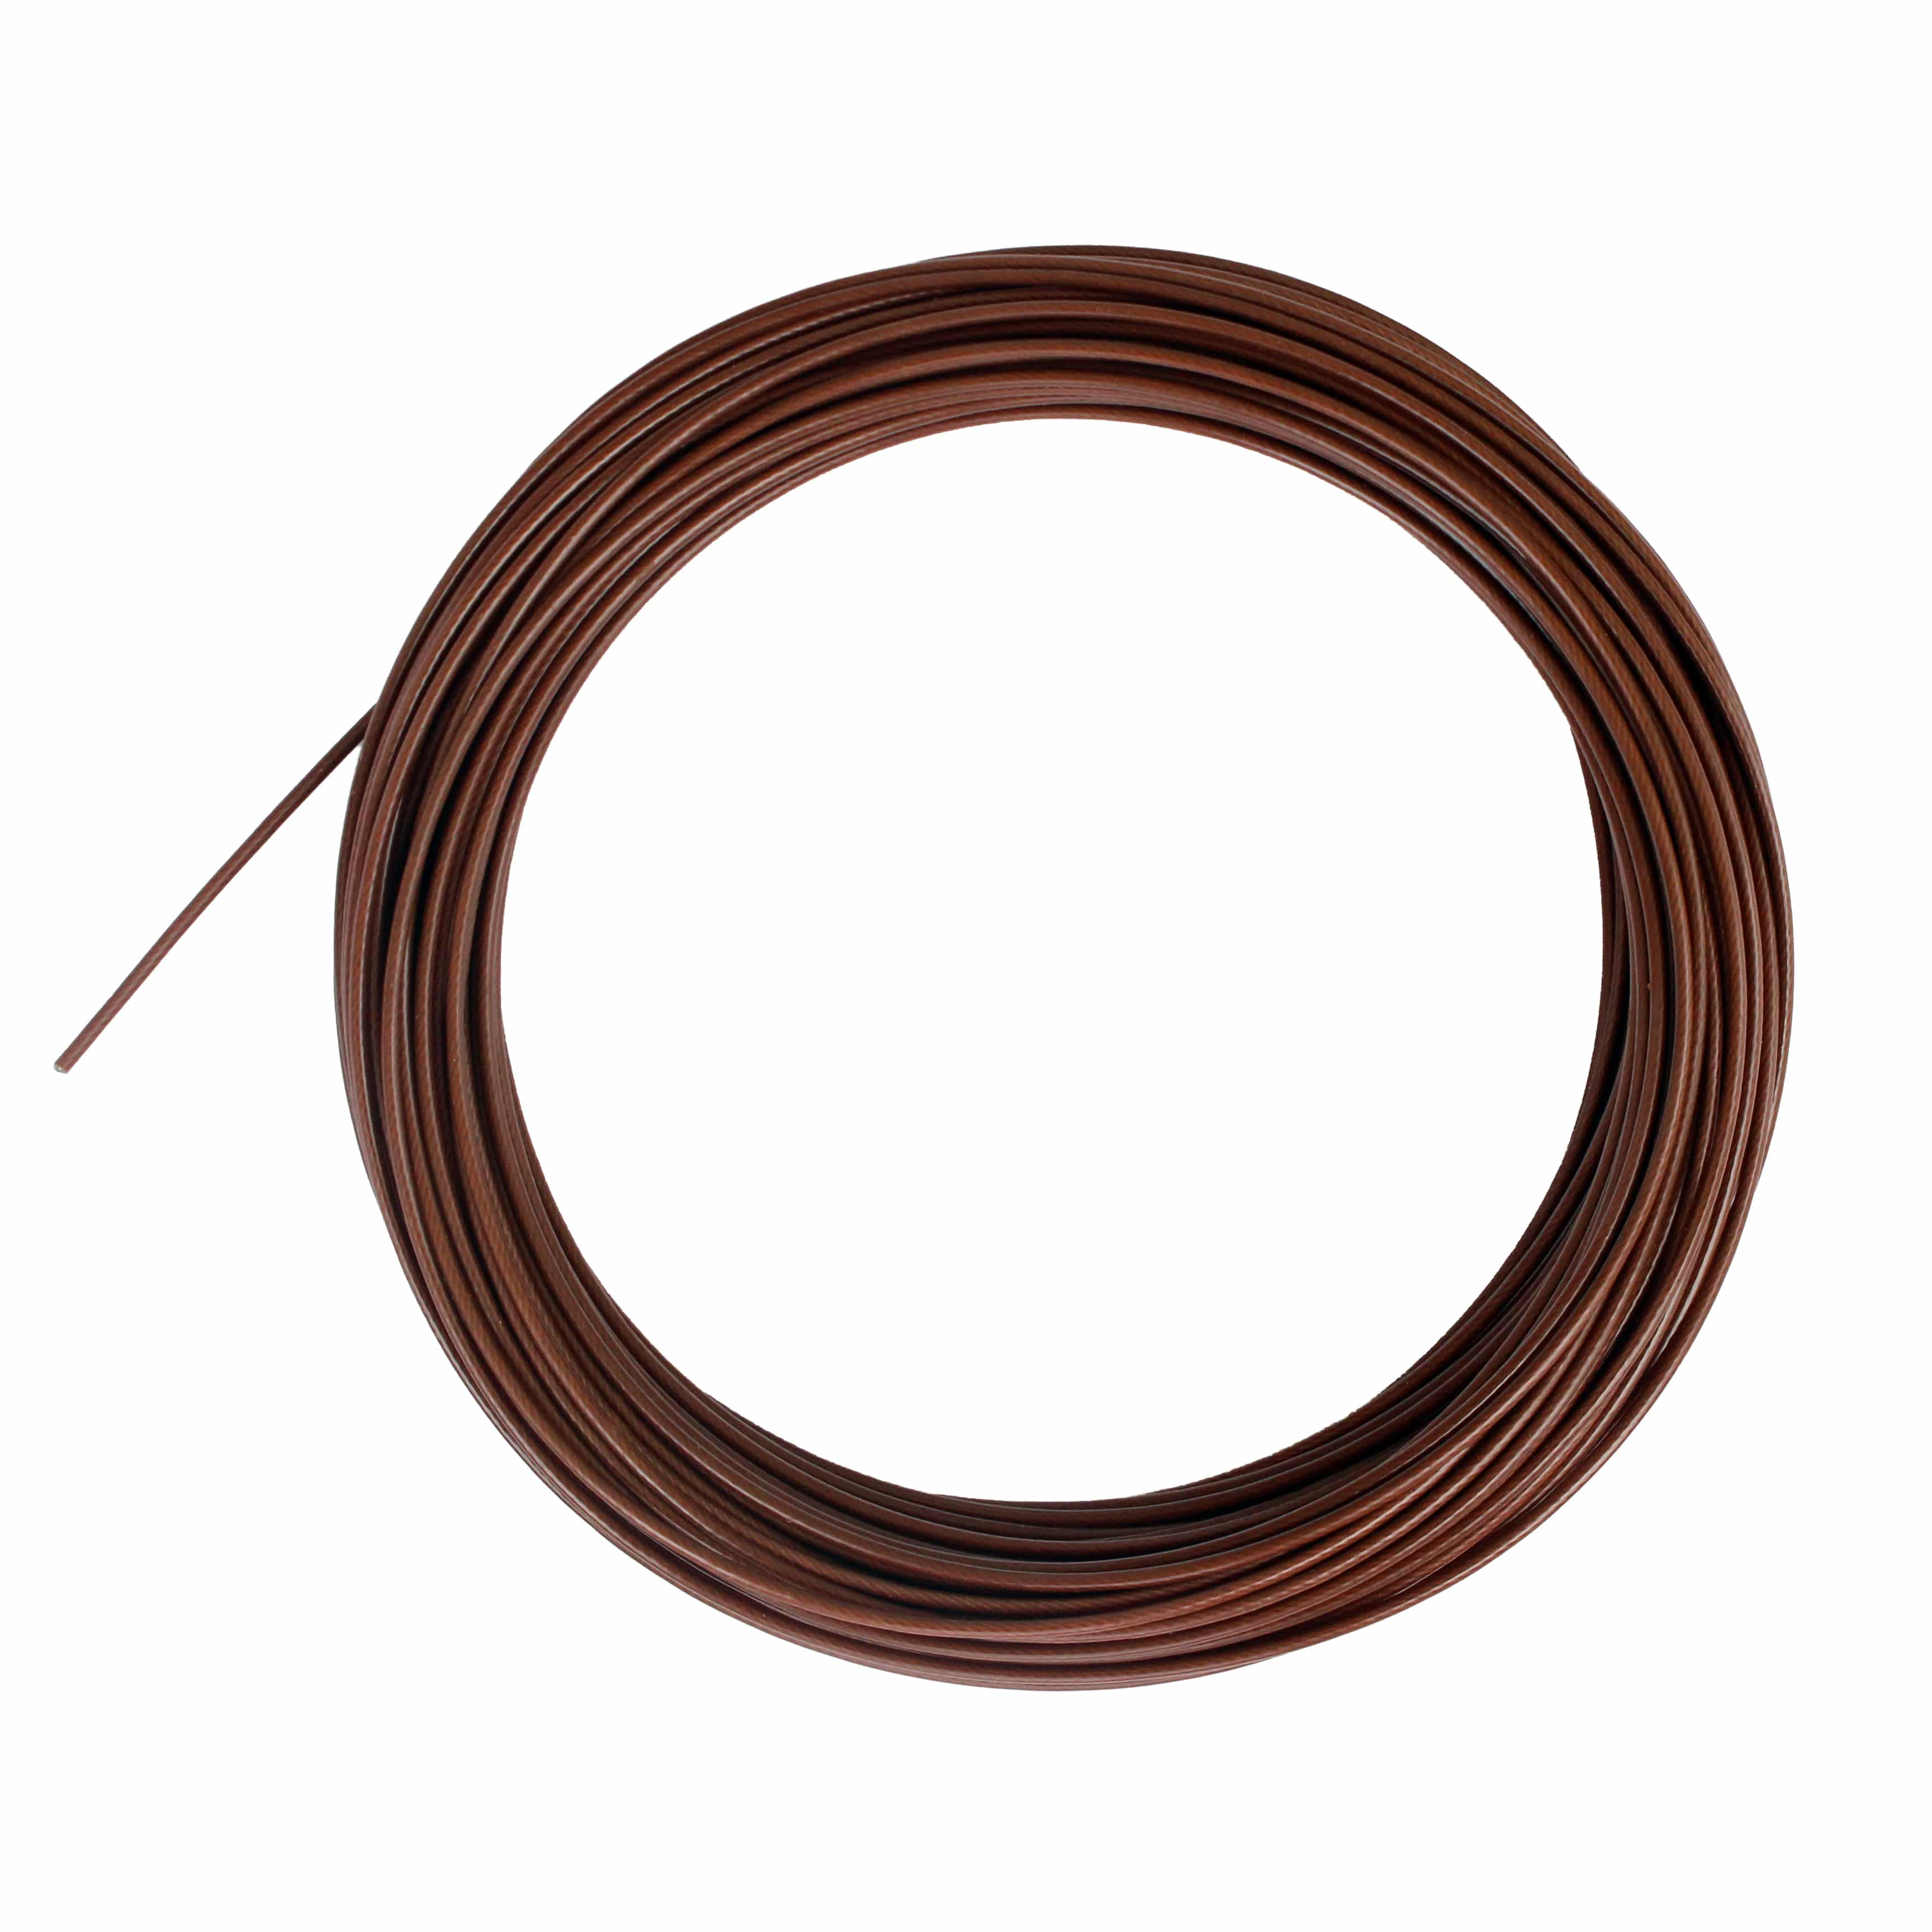 Premium Reception 2000-2005 The Original 6 3//4 Inch is Compatible with Ford Excursion - Car Wash Proof Short Rubber Antenna Internal Copper Coil German Engineered AntennaMastsRus